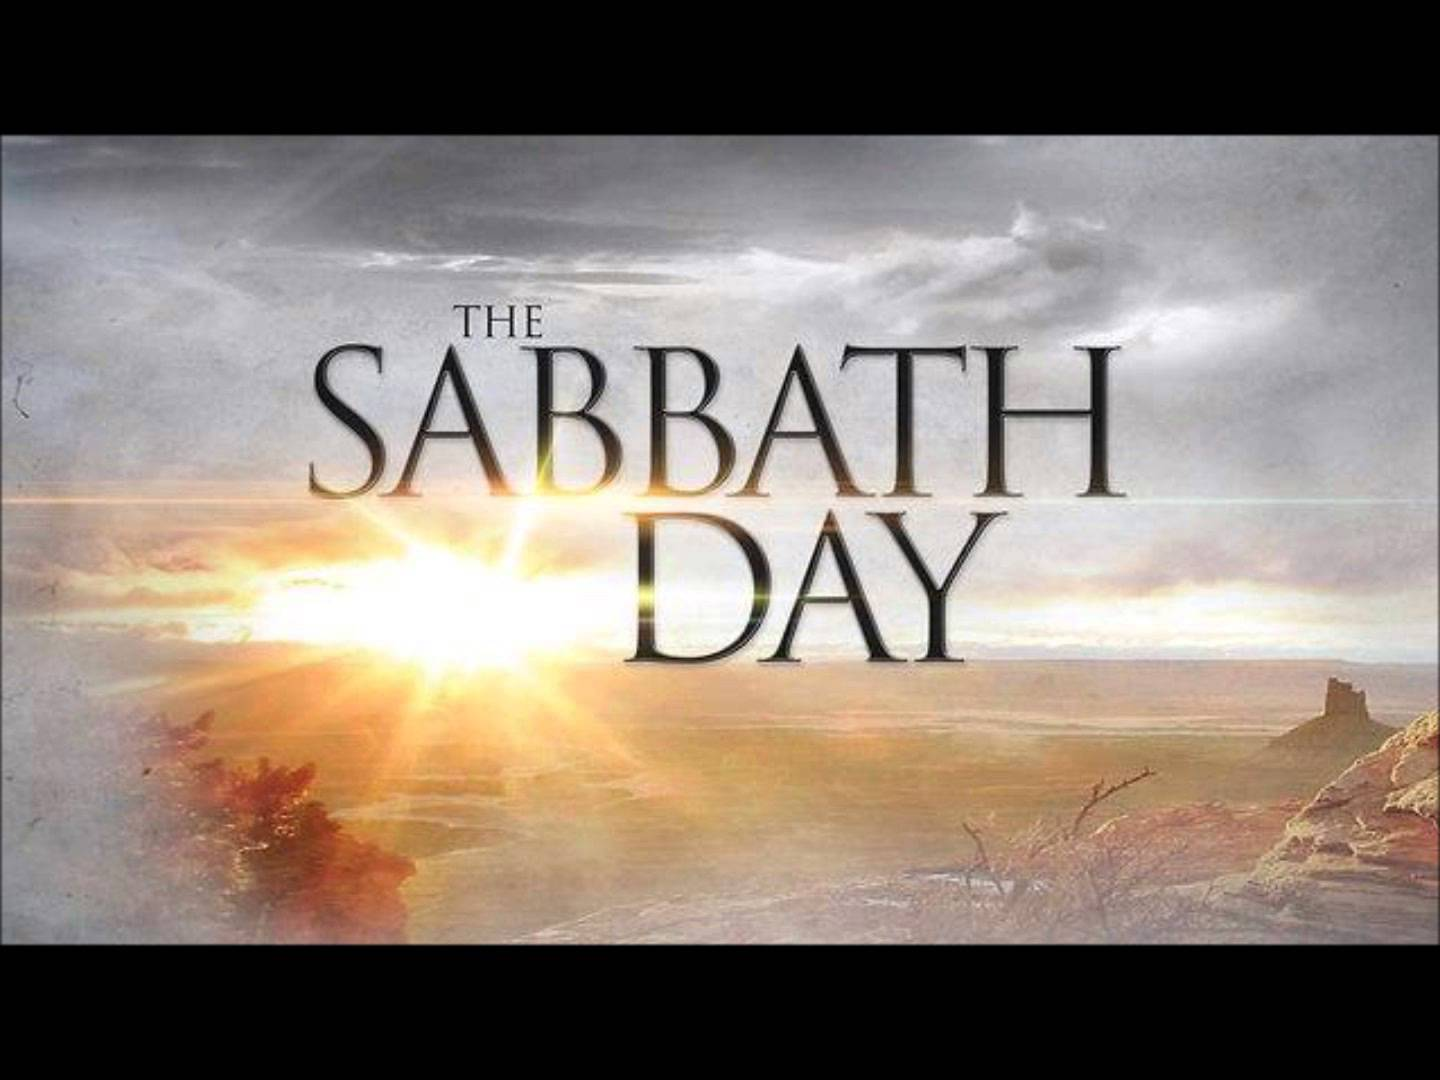 sabbath day - Commandment or Fulfilled?